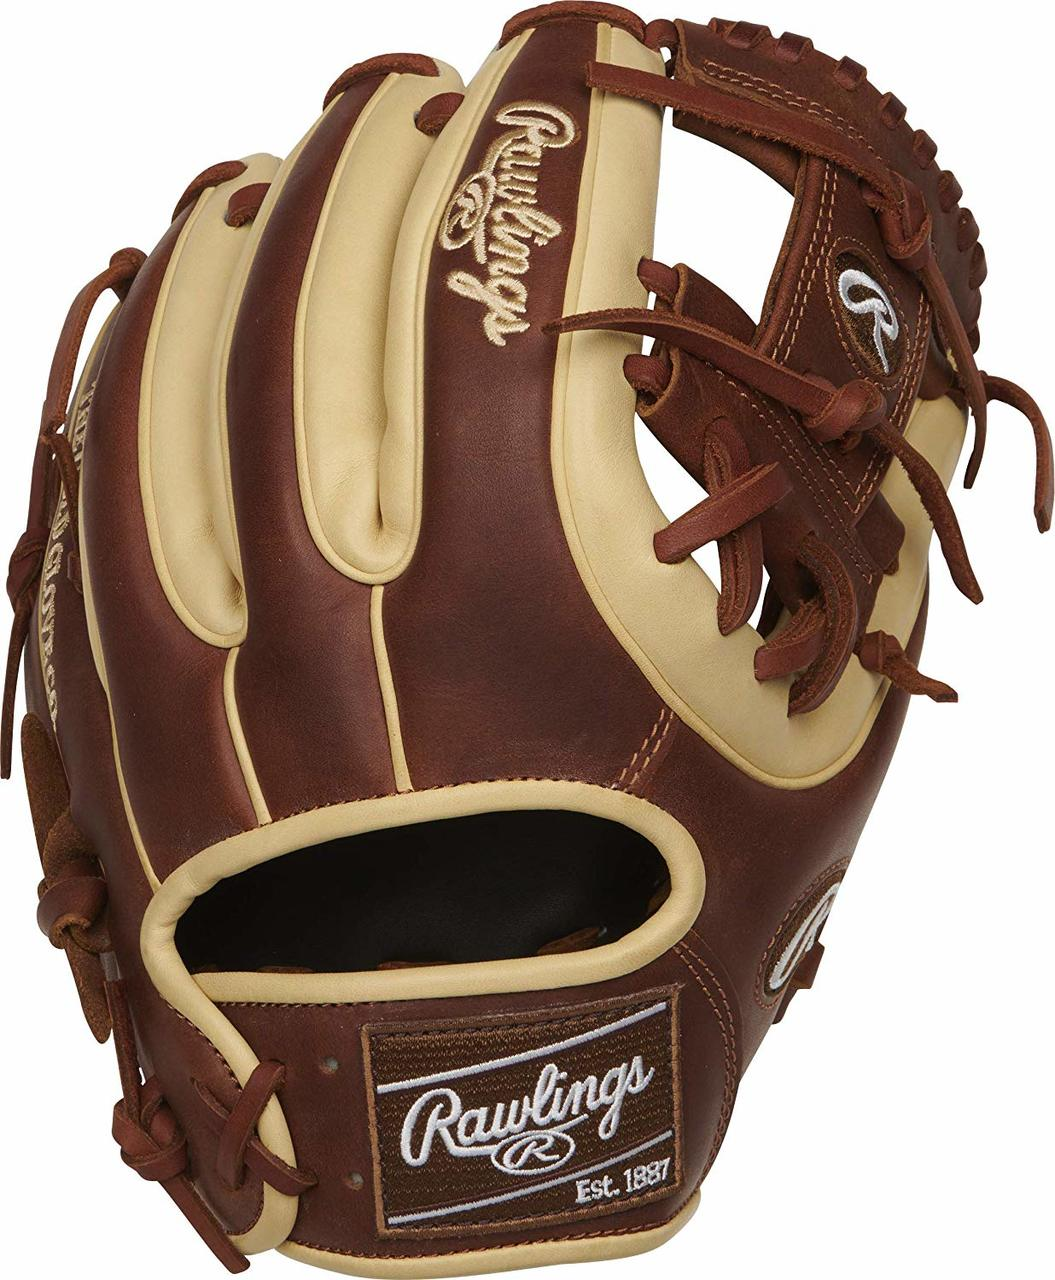 rawlings-heart-of-the-hide-314-2cti-baseball-glove-11-5-right-hand-throw PRO314-2CTI-RightHandThrow Rawlings 083321598777 Manufactured by the top glove craftsmen in the world the Heart